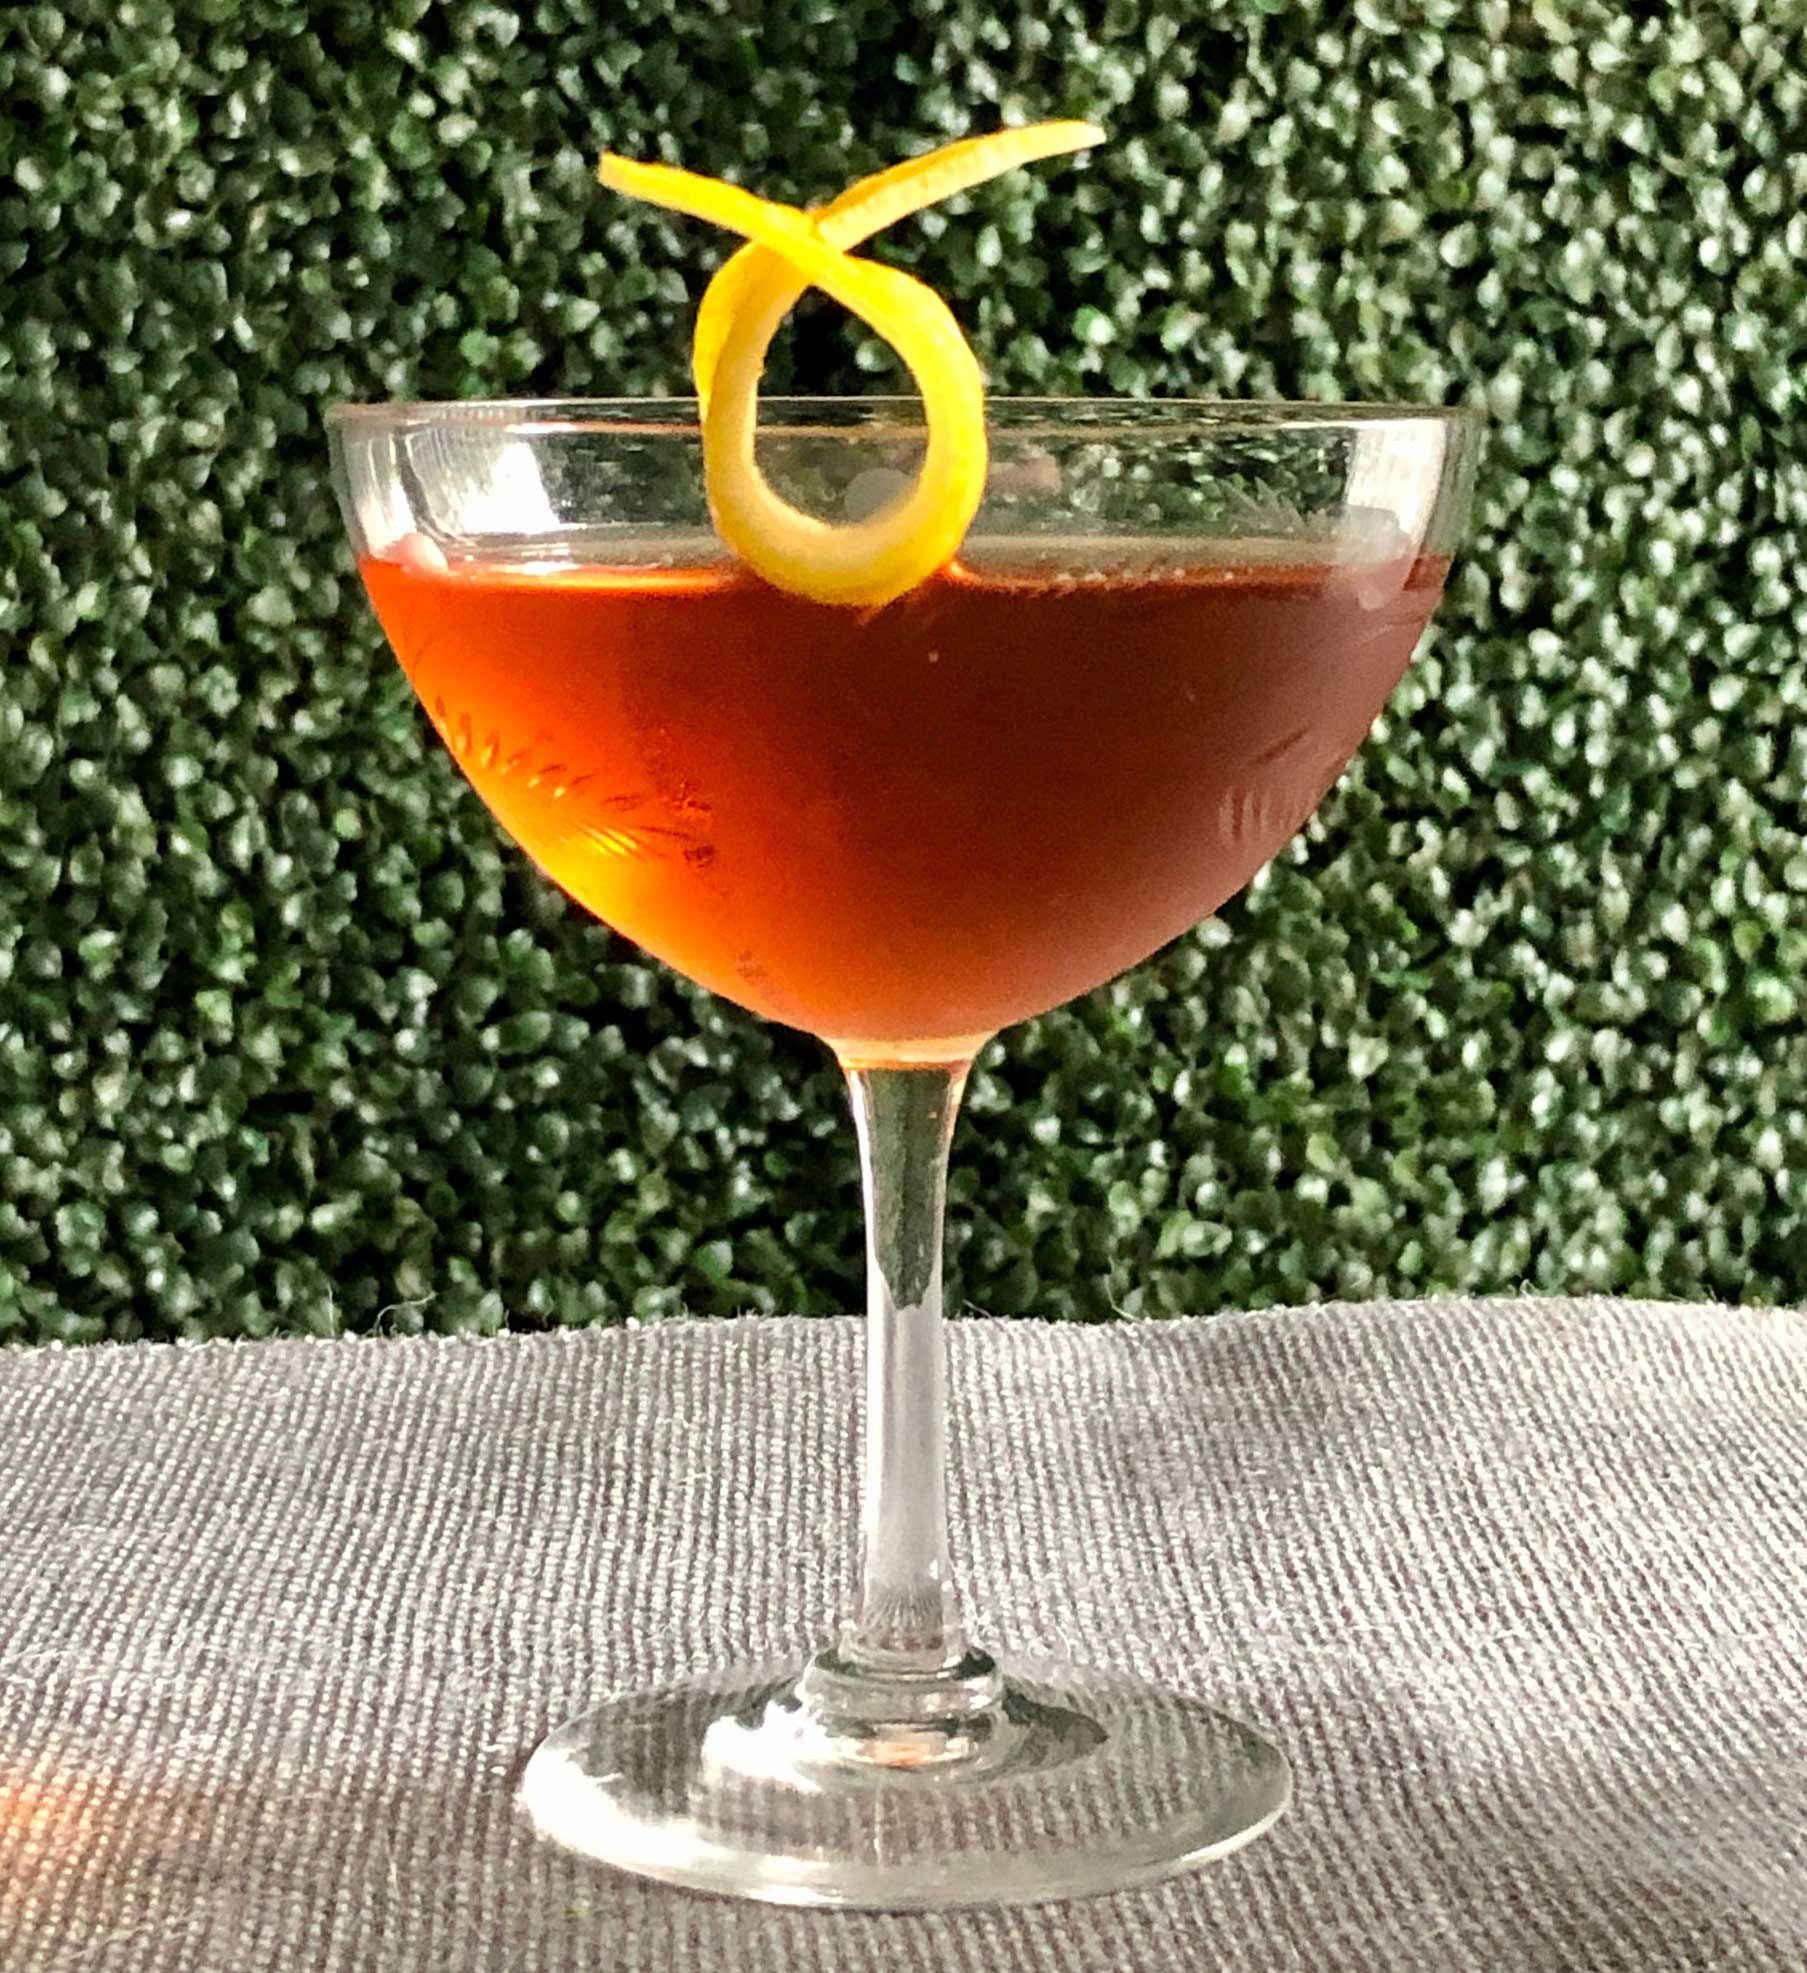 An example of the Mr. Burns, the mixed drink (cocktail), by Jon DeRosa, Oldfields Liquor Room, Los Angeles, featuring Dewar's White Label, Cocchi Vermouth di Torino, and Zirbenz Stone Pine Liqueur of the Alps; photo by Lee Edwards